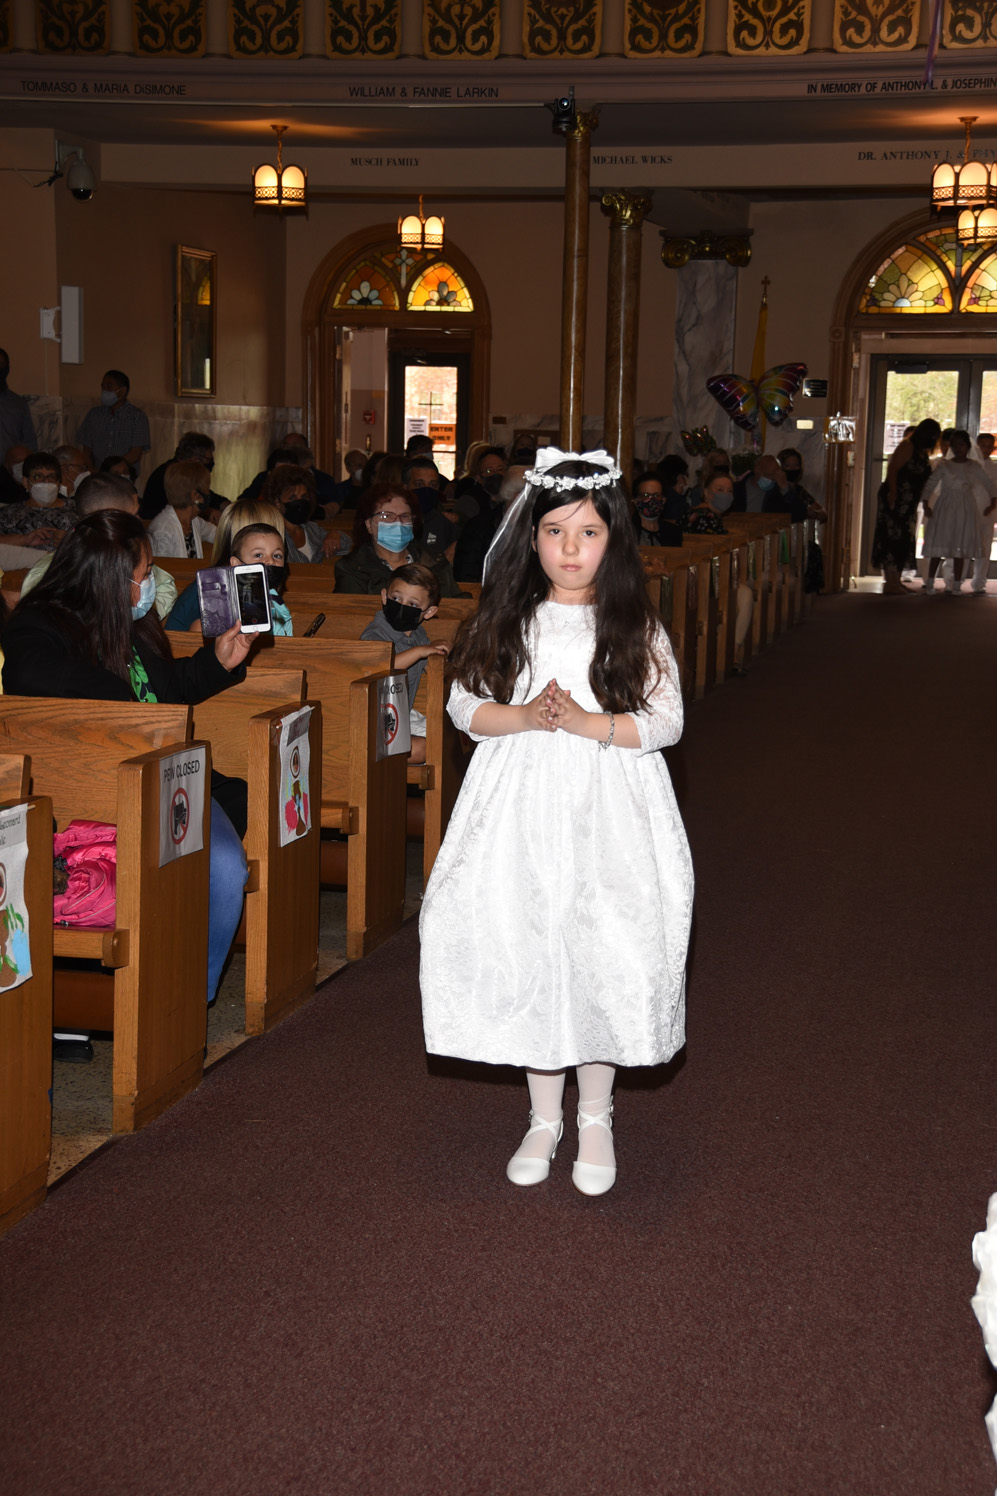 FIRST-COMMUNION-MAY-2-2021-1001001029